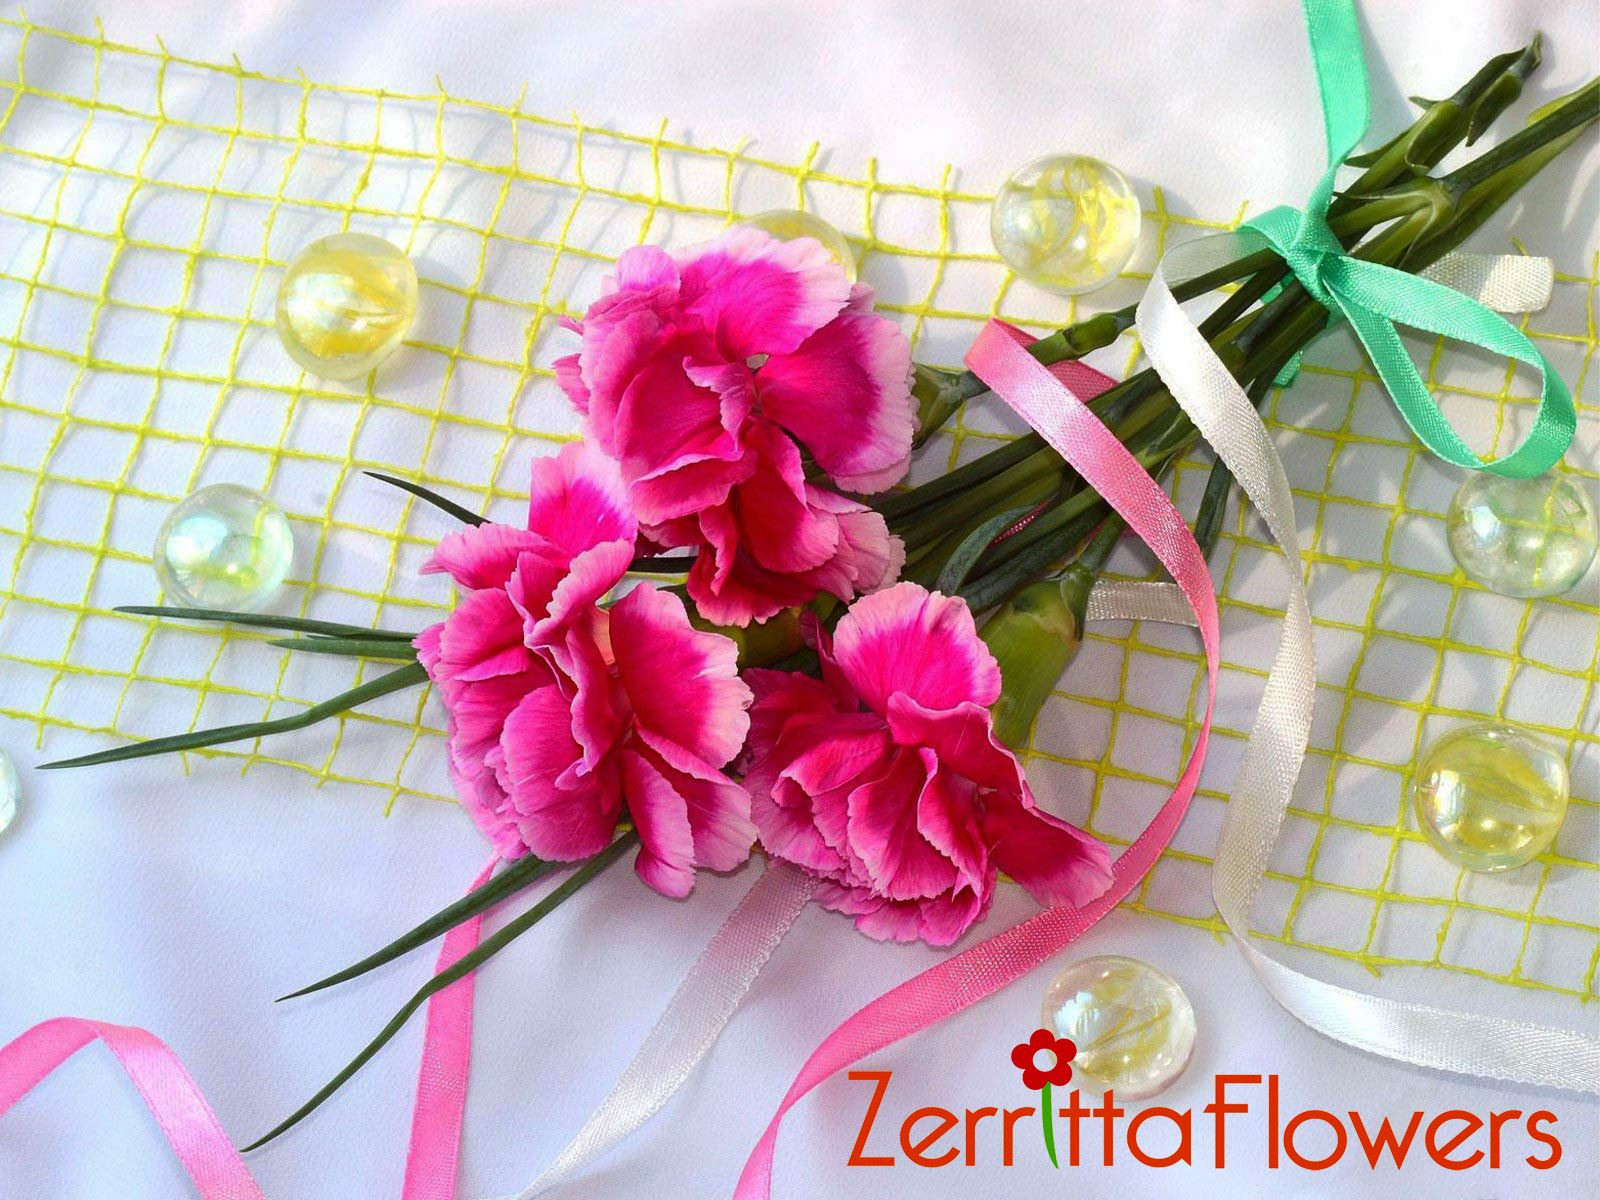 Cheap flower delivery nyc zerritta flowers the best place in town to cheap flower delivery nyc zerritta flowers the best place in town to shop for flowers gifts in dha karachi 8 izmirmasajfo